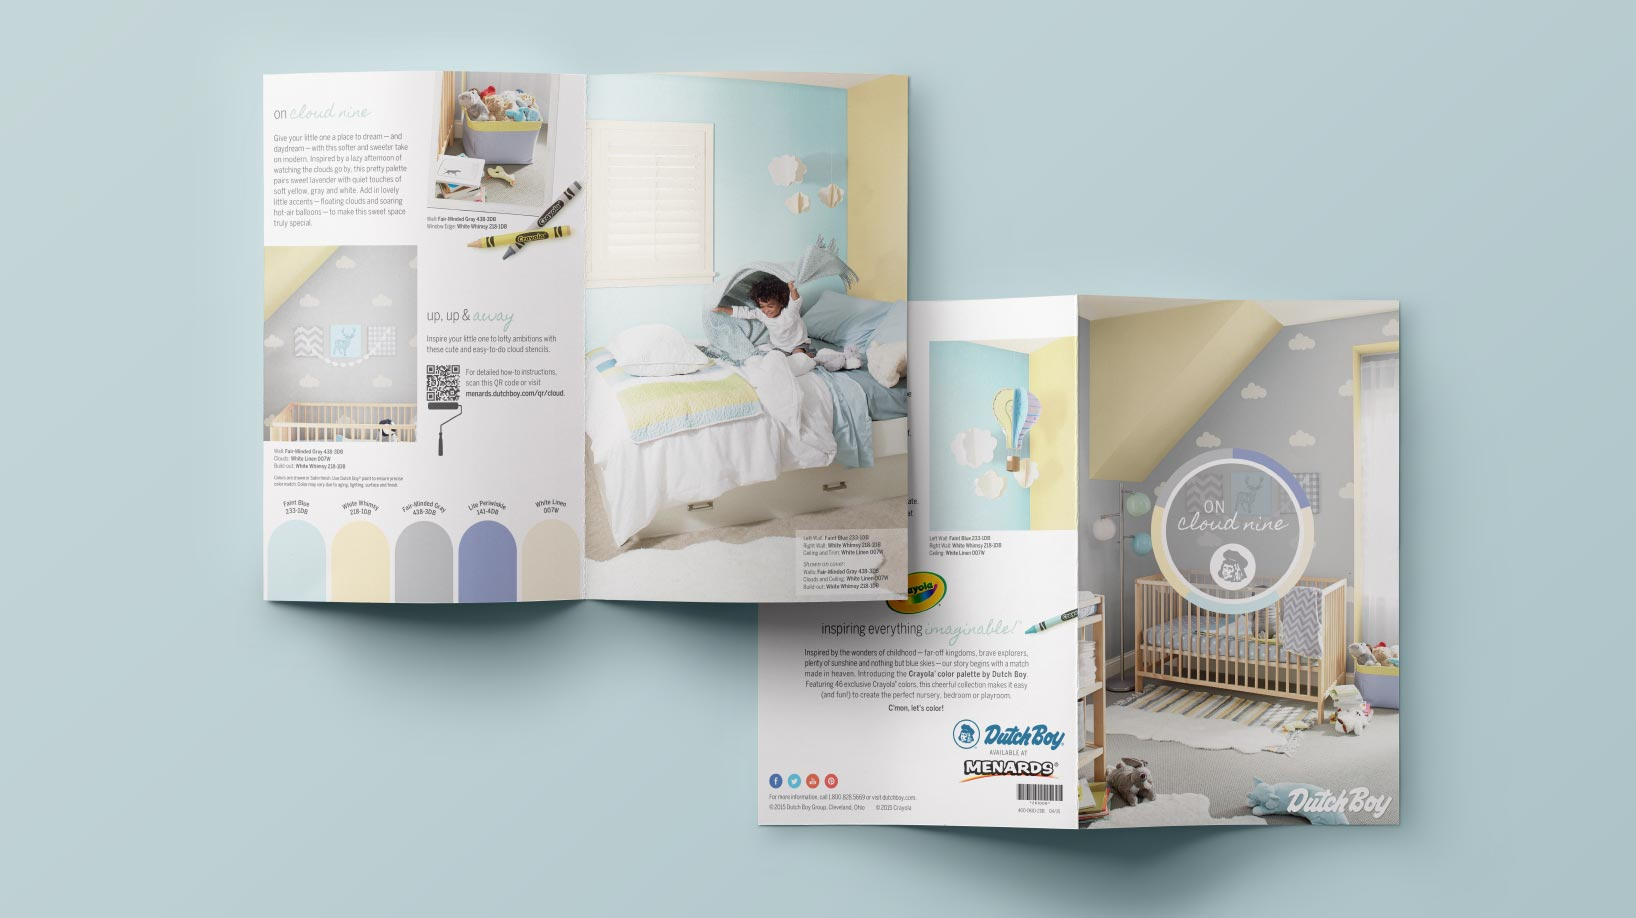 Dutch Boy brand collateral catalog